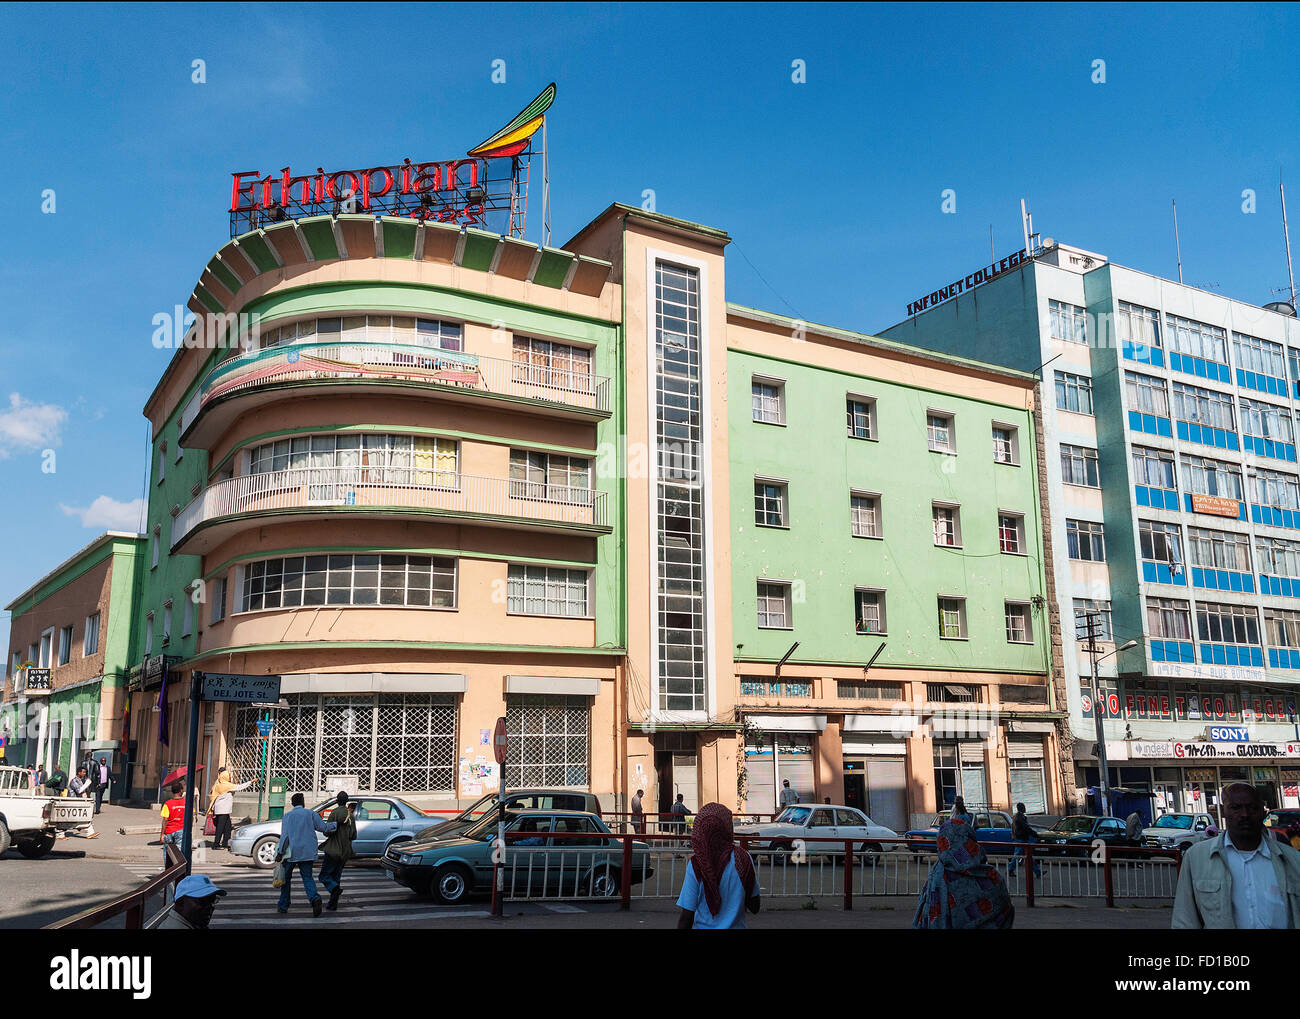 retro vintage buildings in street of central addis ababa ethiopia - Stock Image